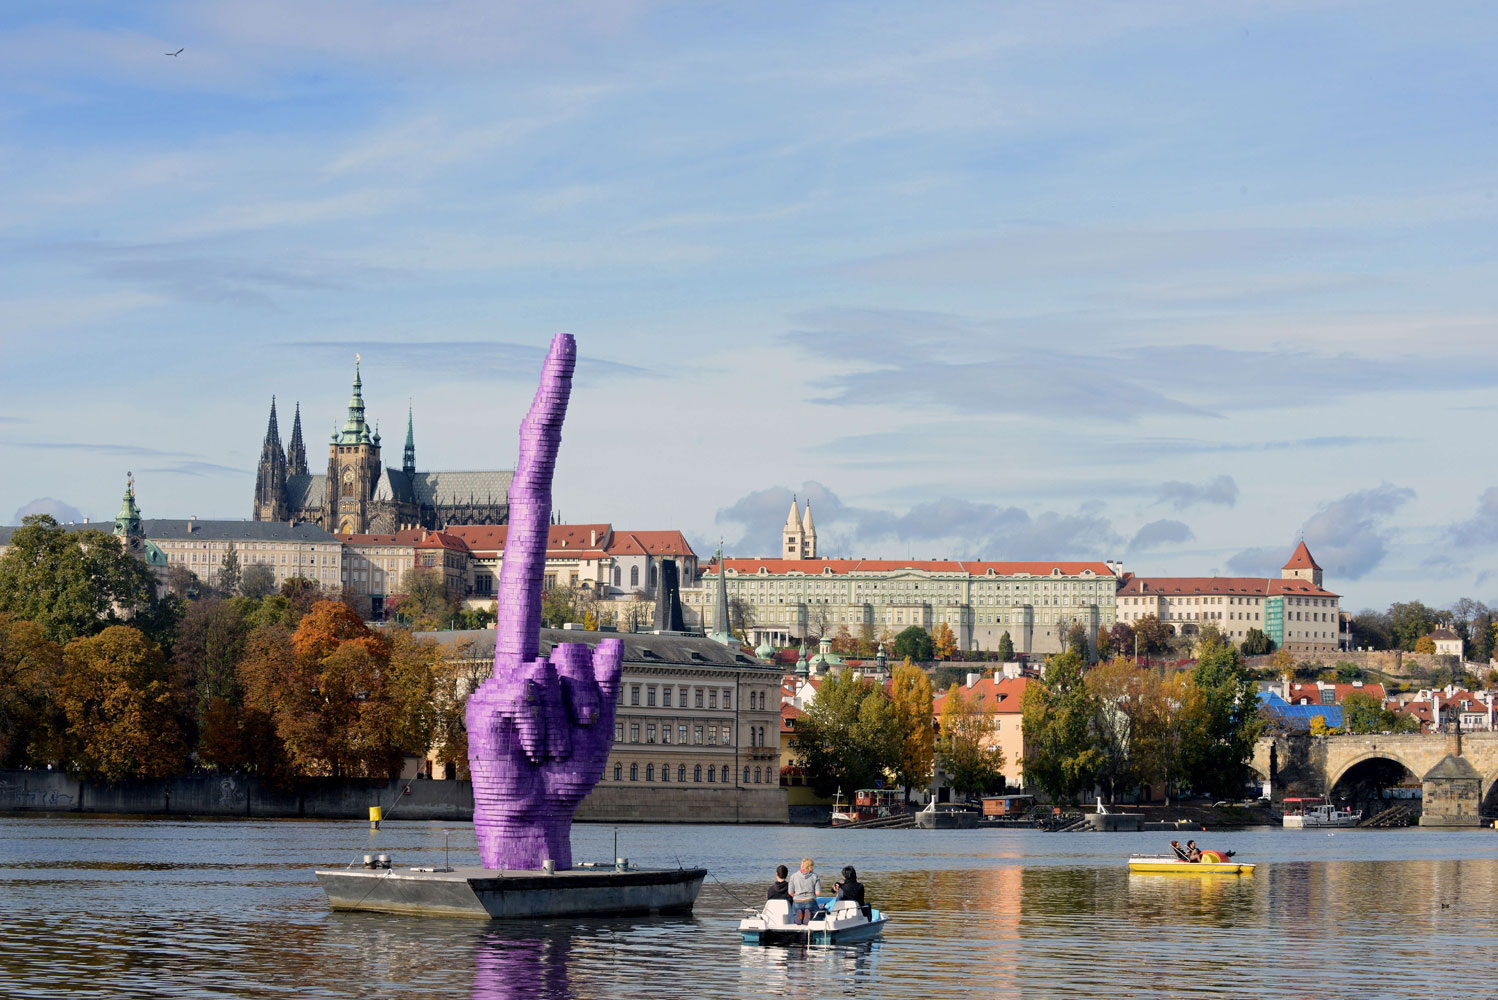 People sailing on the boats on Vltava River look at the giant purple middle finger sculpture by Czech artist David Cerny on October 21, 2013 in Prague.